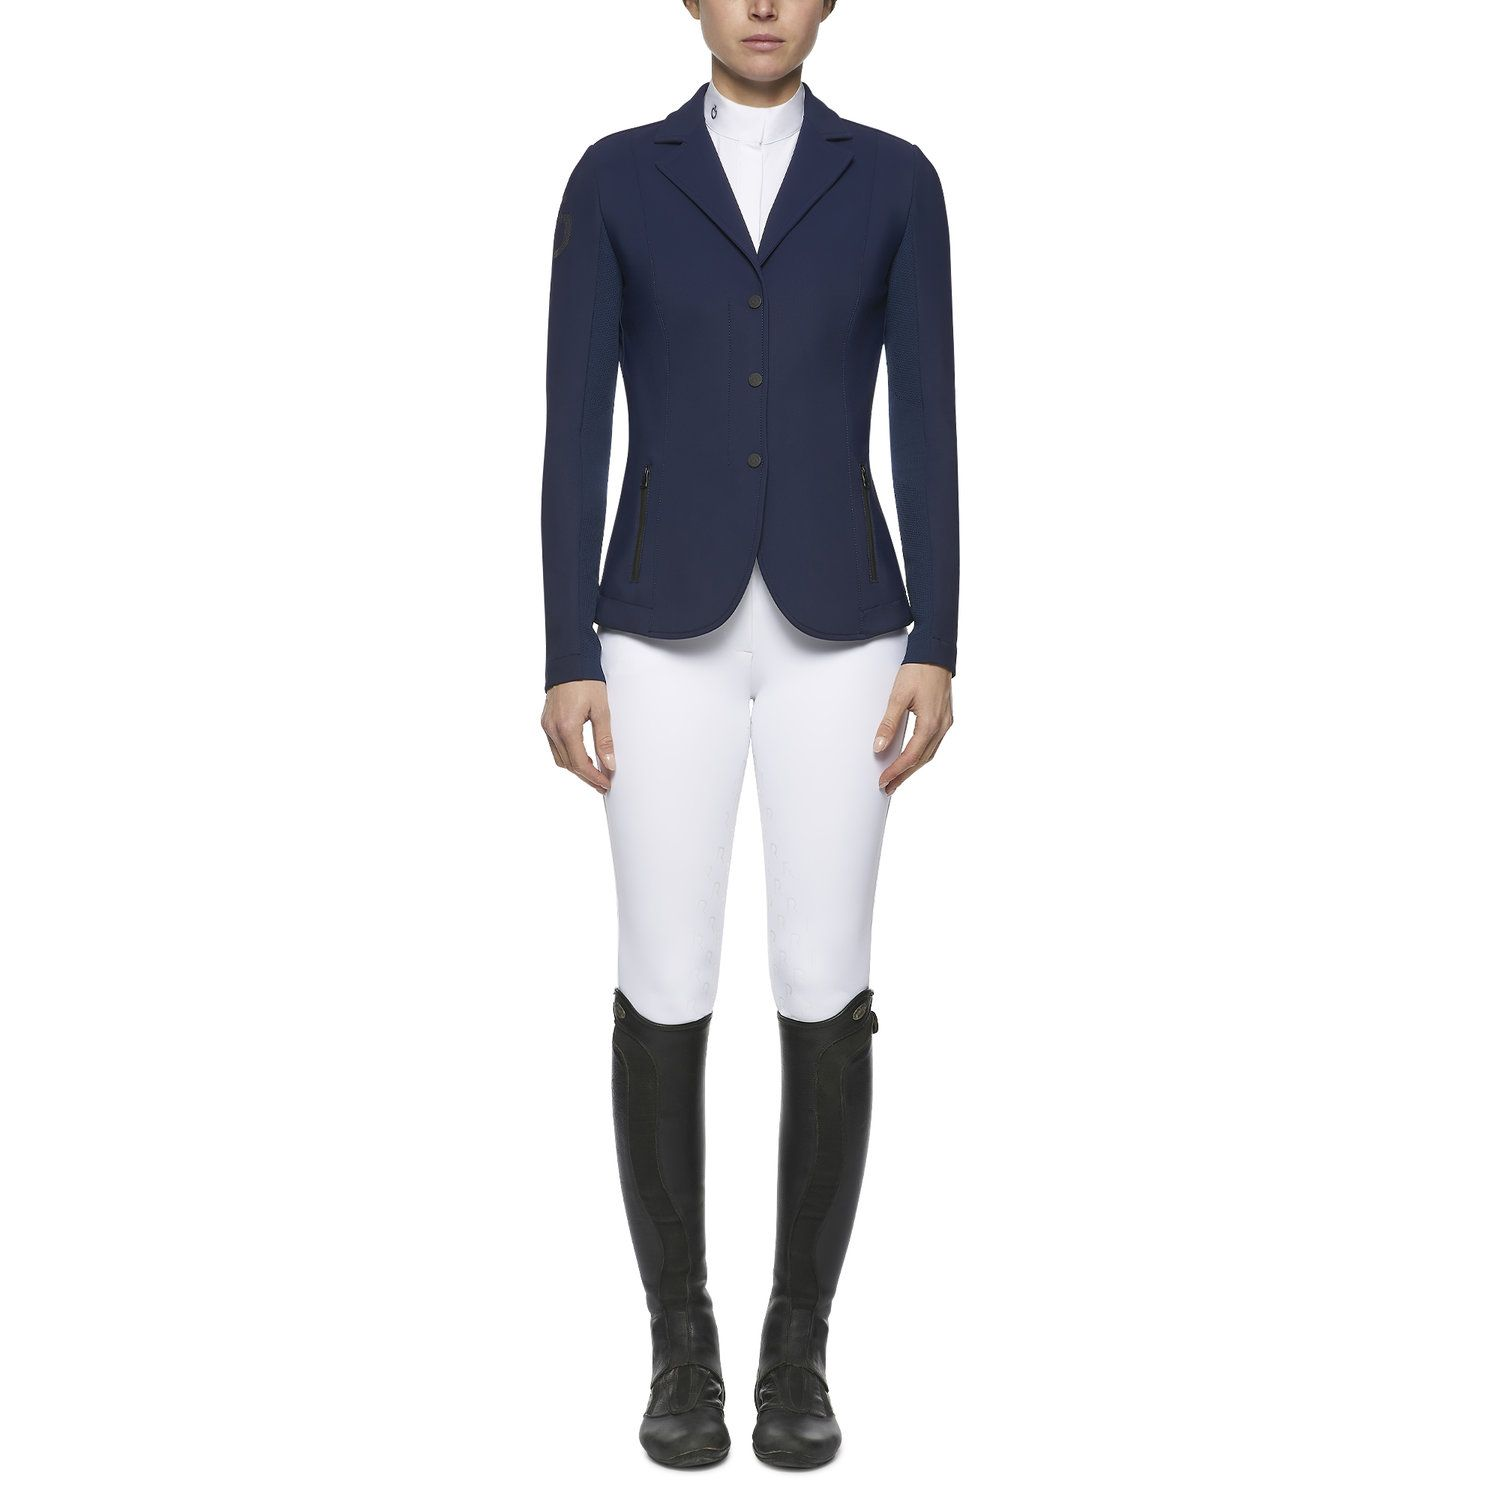 Women's zip riding jacket with technical knit inserts